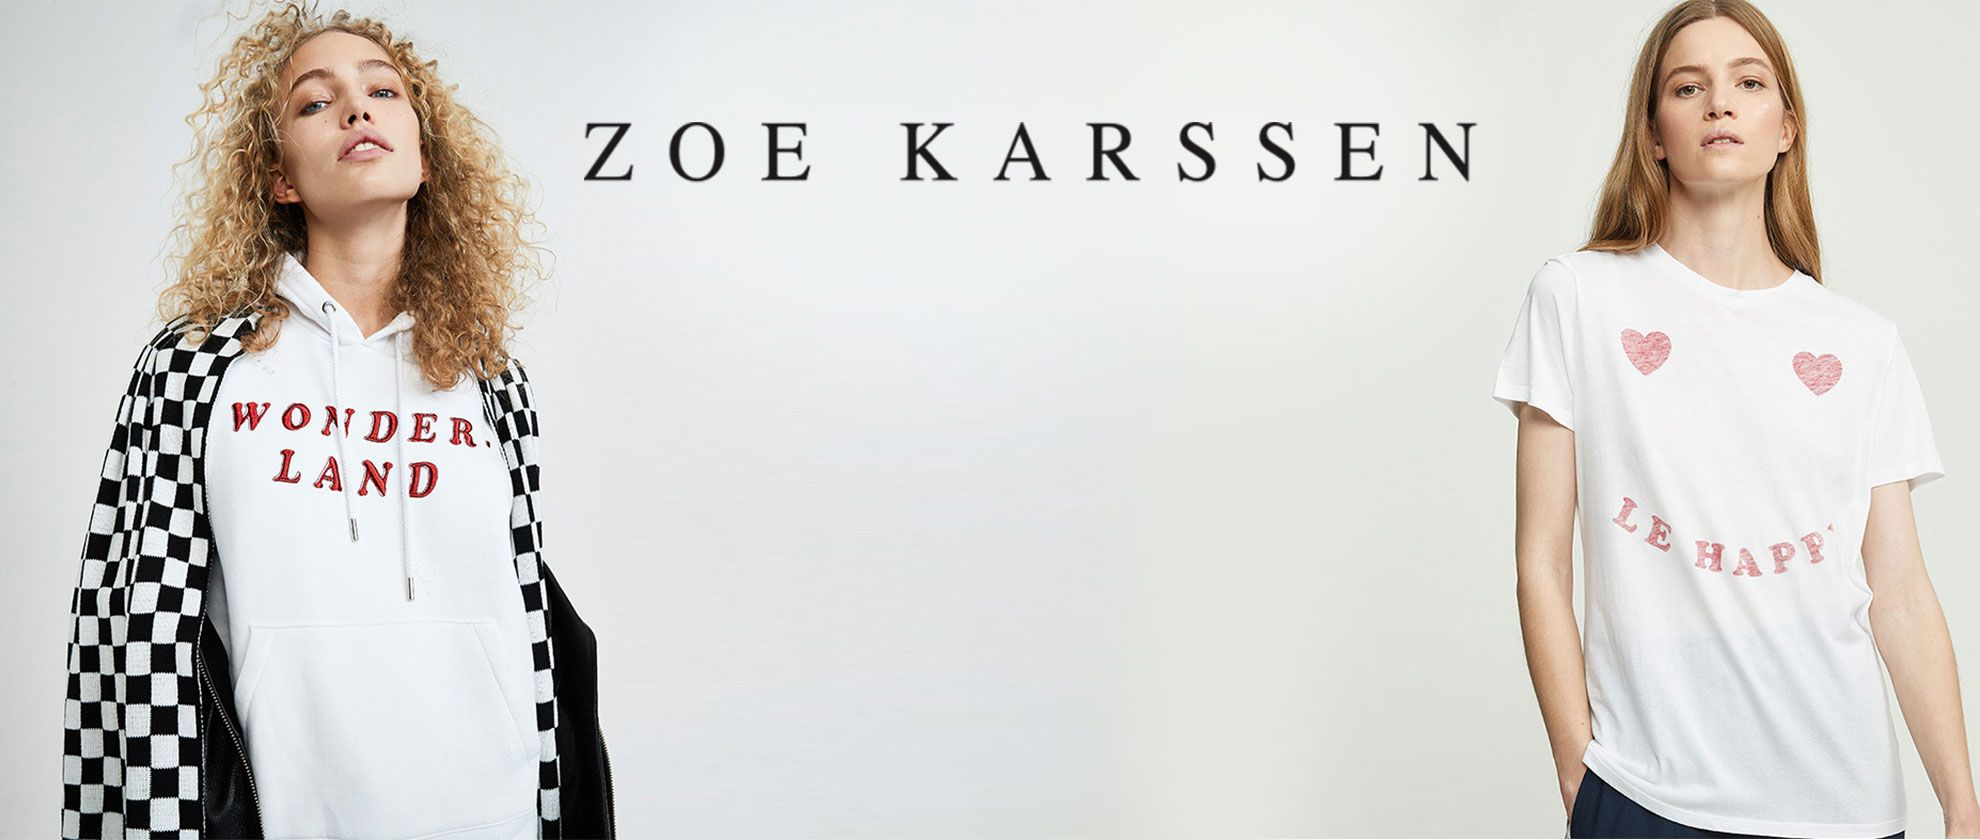 Express yourself with Zoe Karssen